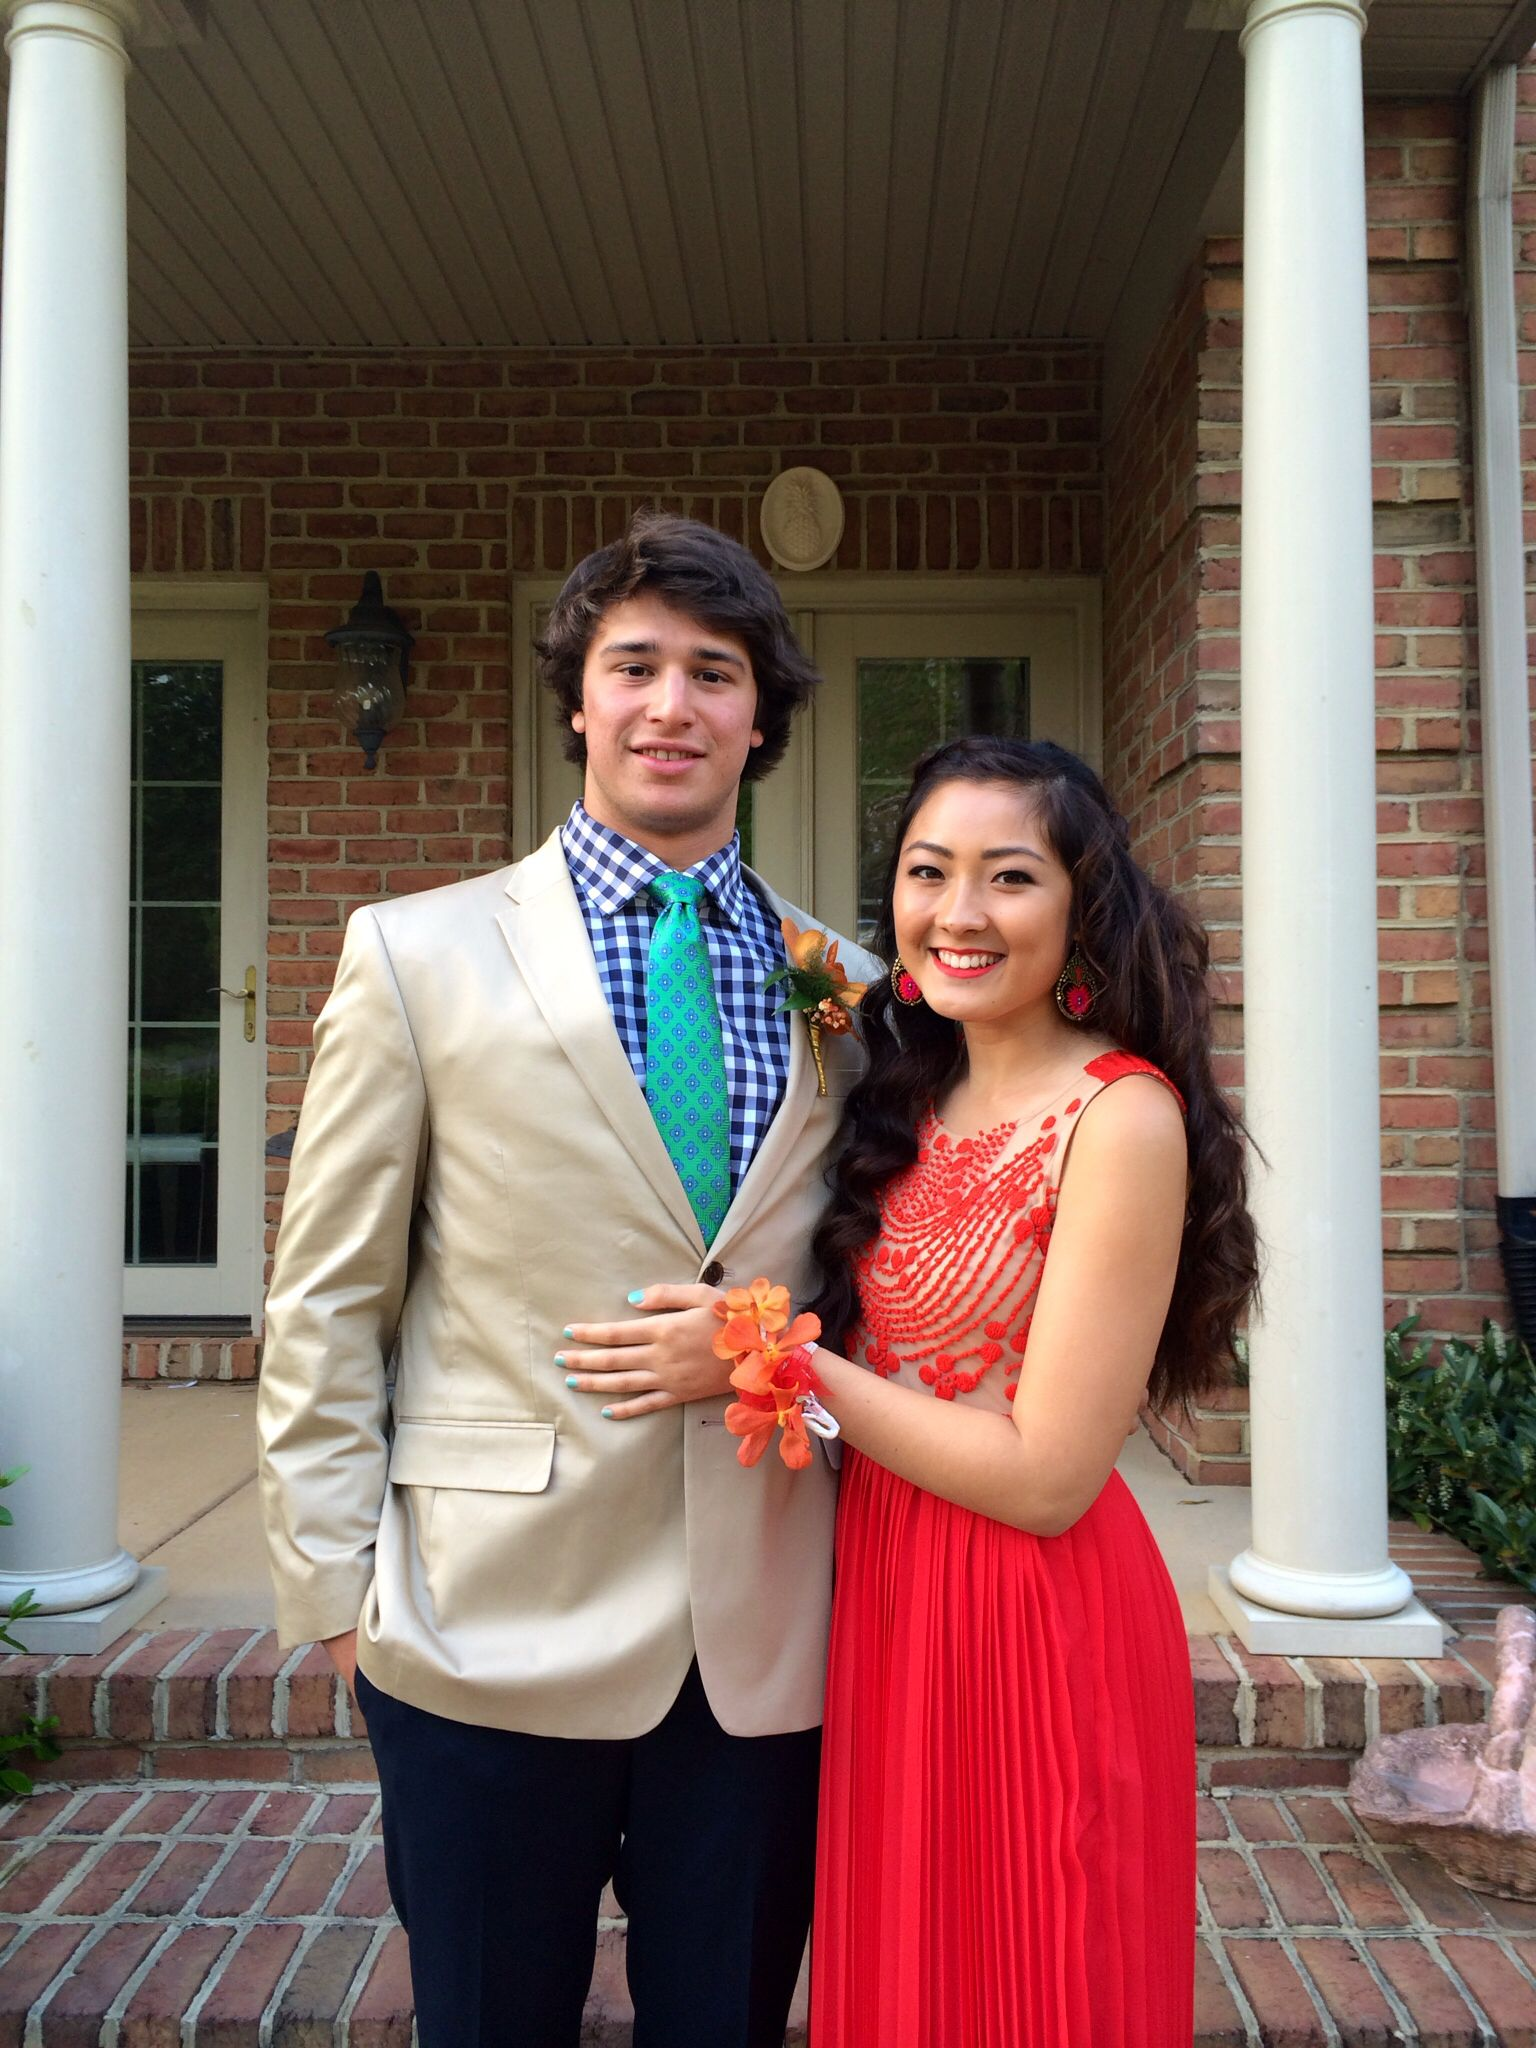 complimenting each other's colors | PRAAAAAHM!! | Pinterest